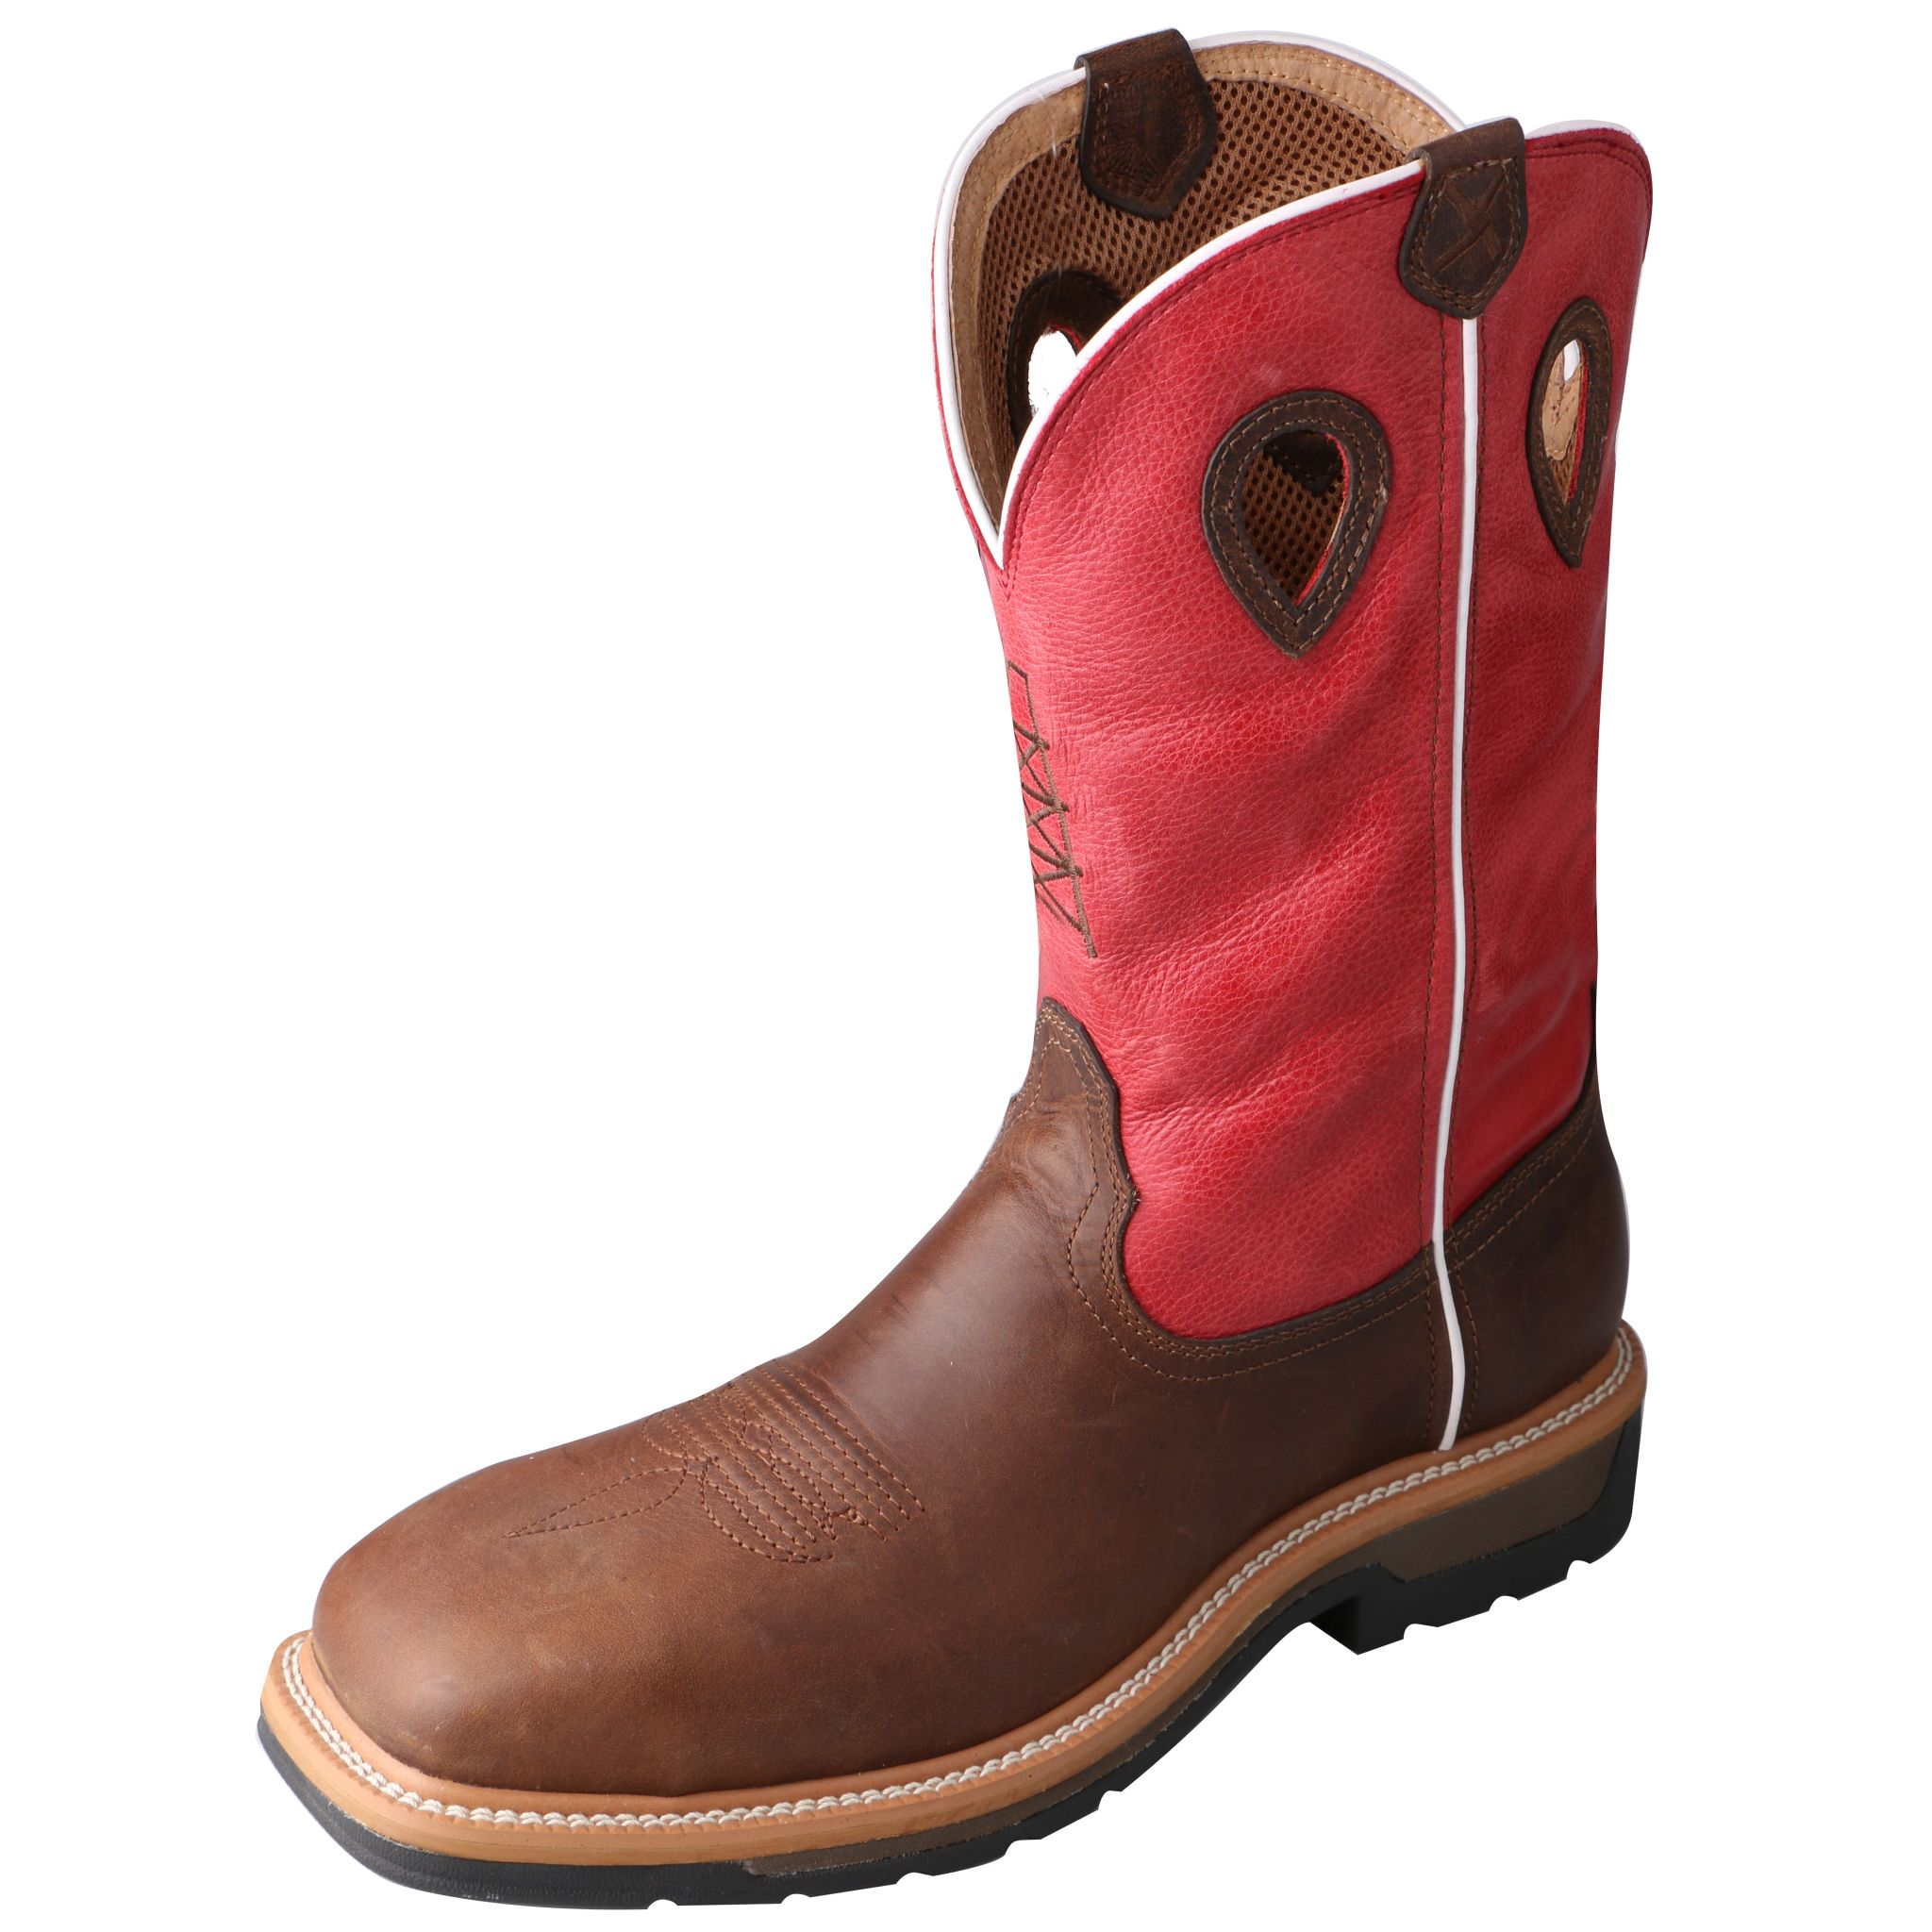 Men's Lite Cowboy Workboot – Distressed Latigo/Red-Twisted X